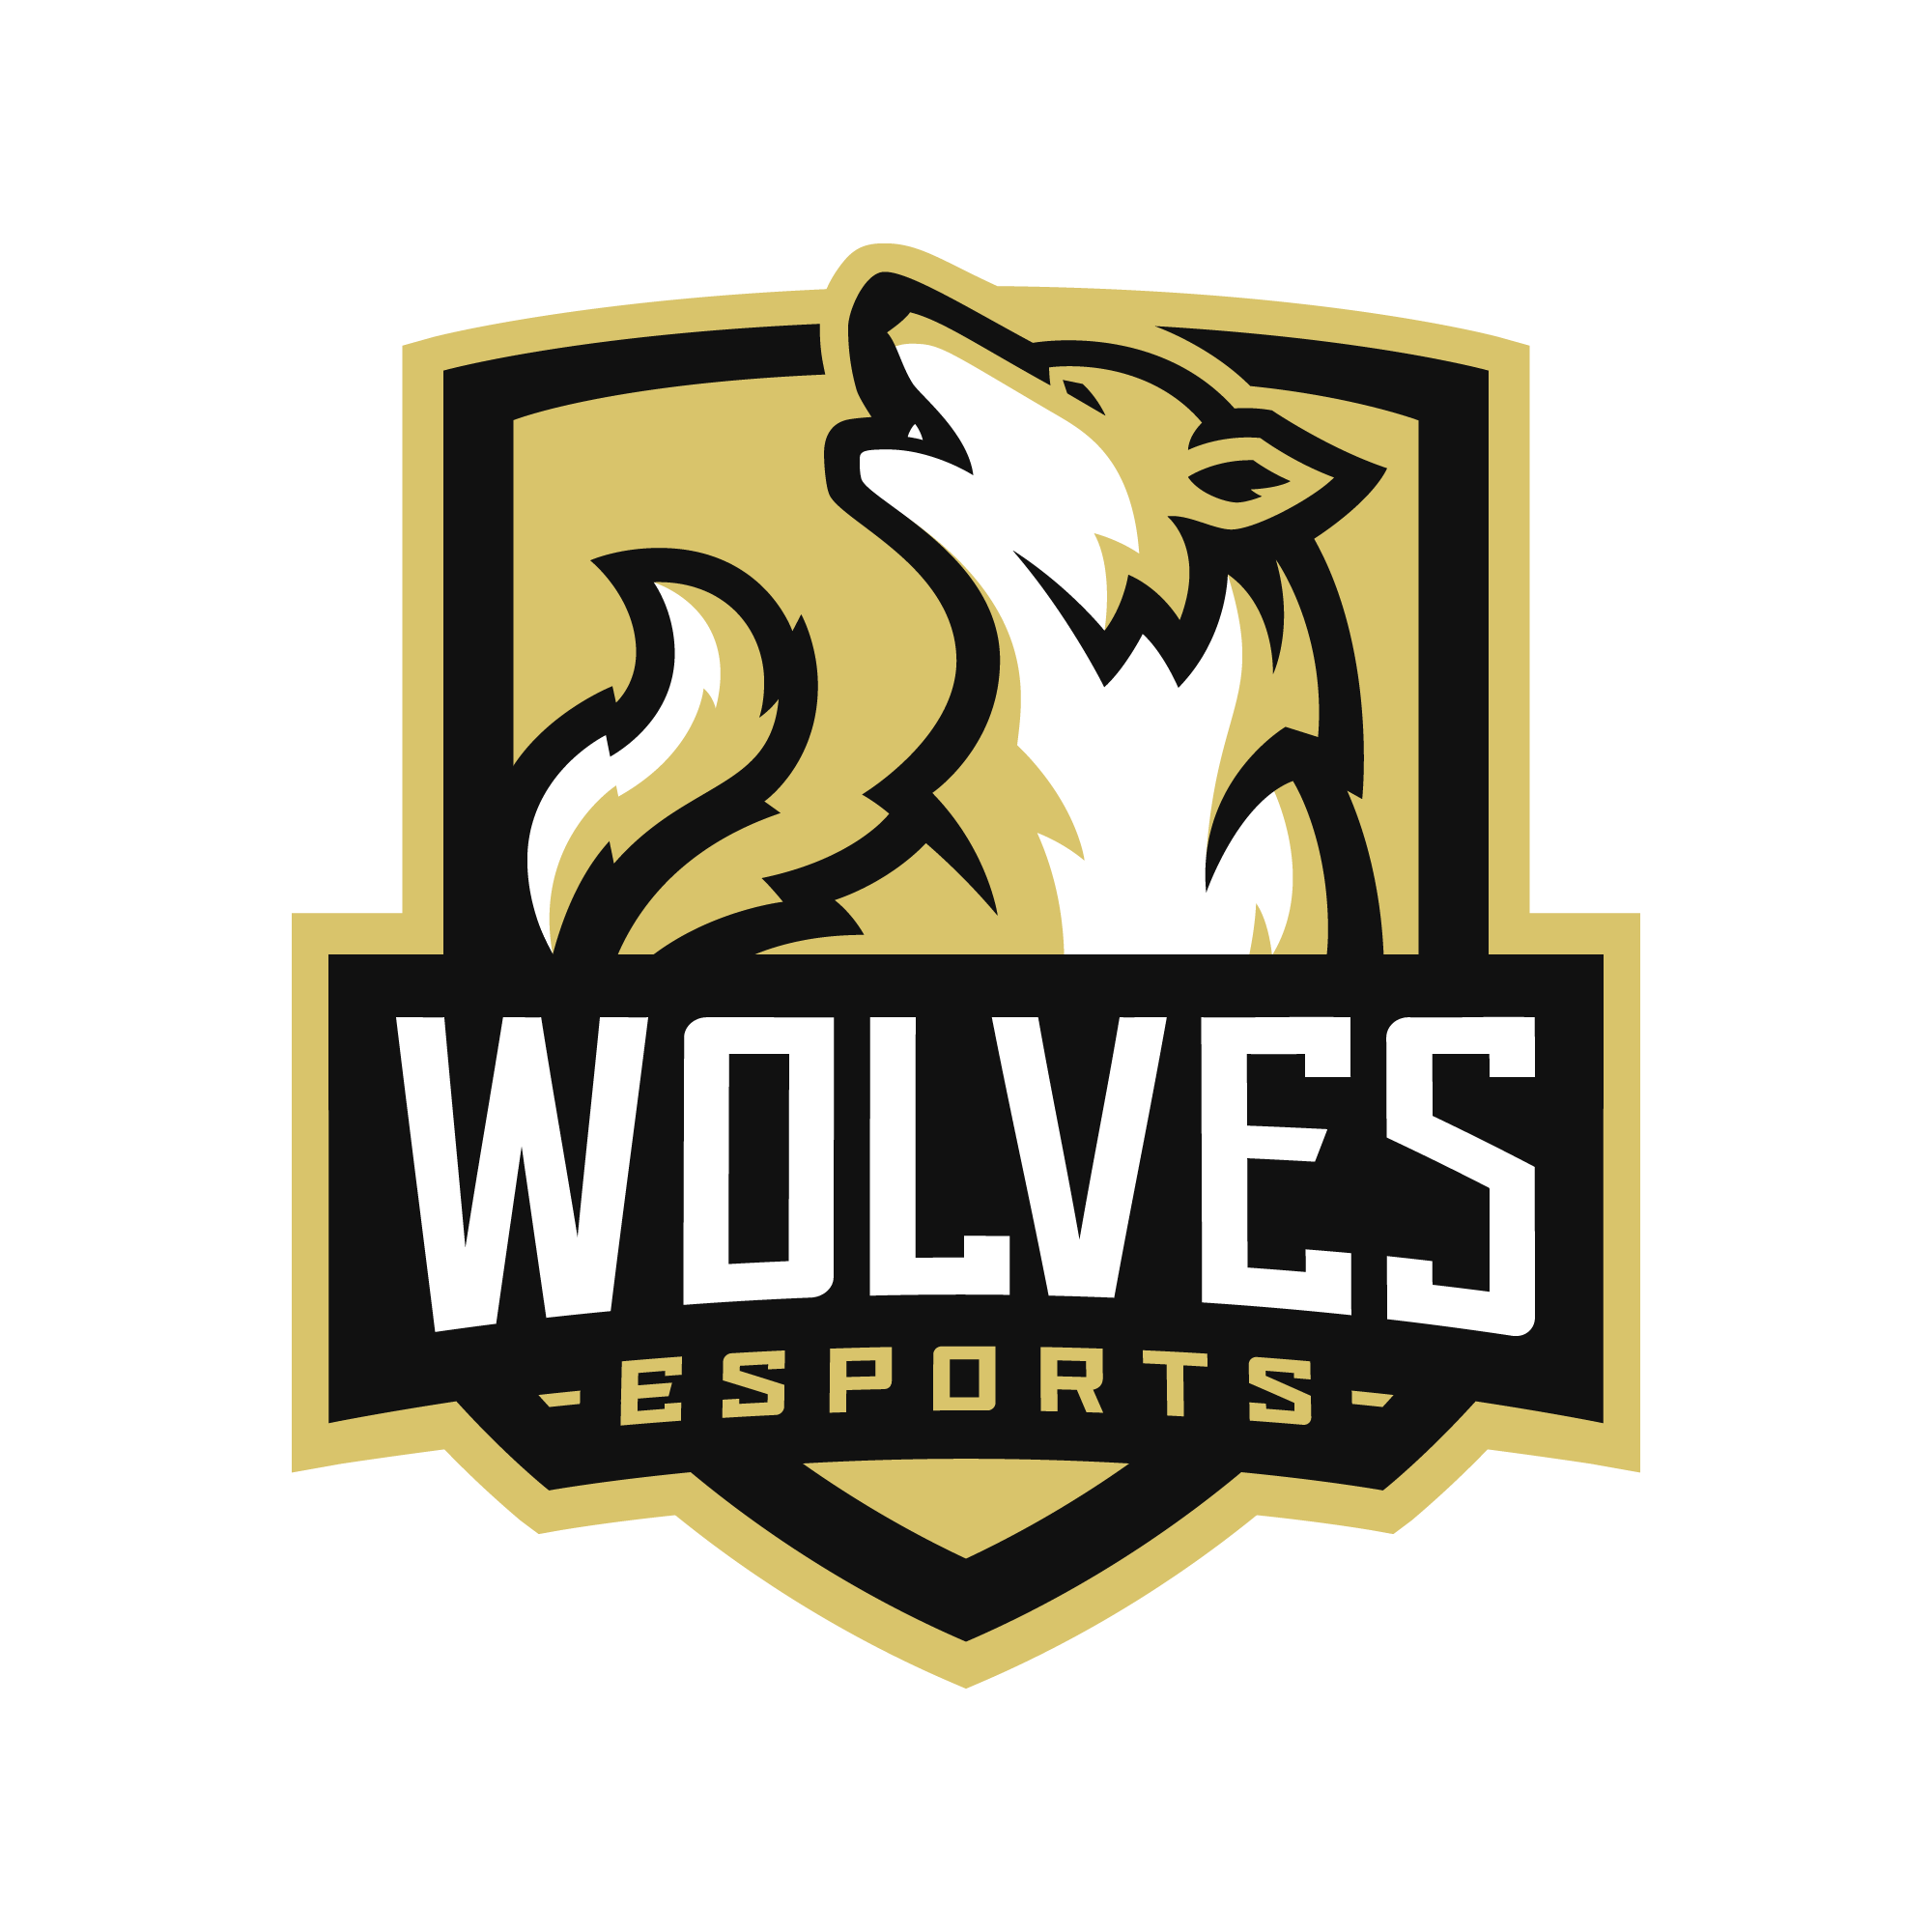 Logo & Resources - Wolves Esports